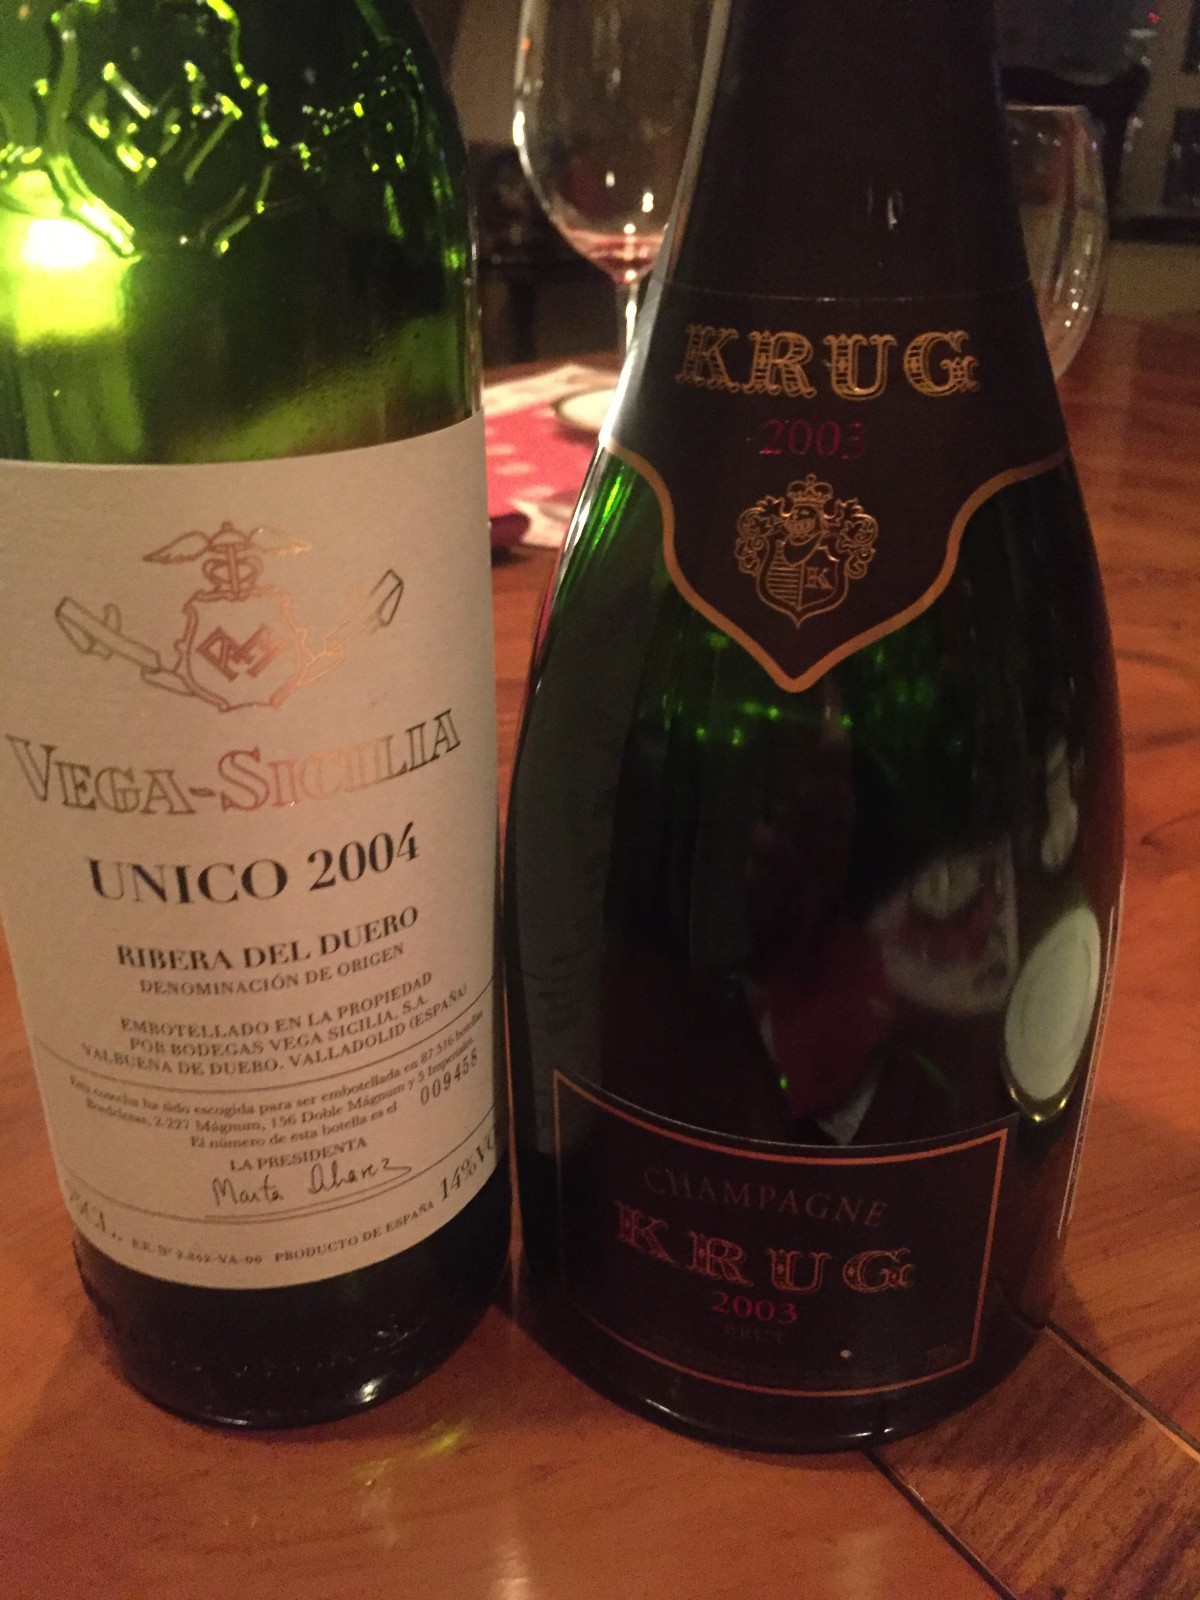 These wines preceded Michael Feinstein @ Carnegie Hall!  Wow, what a night…